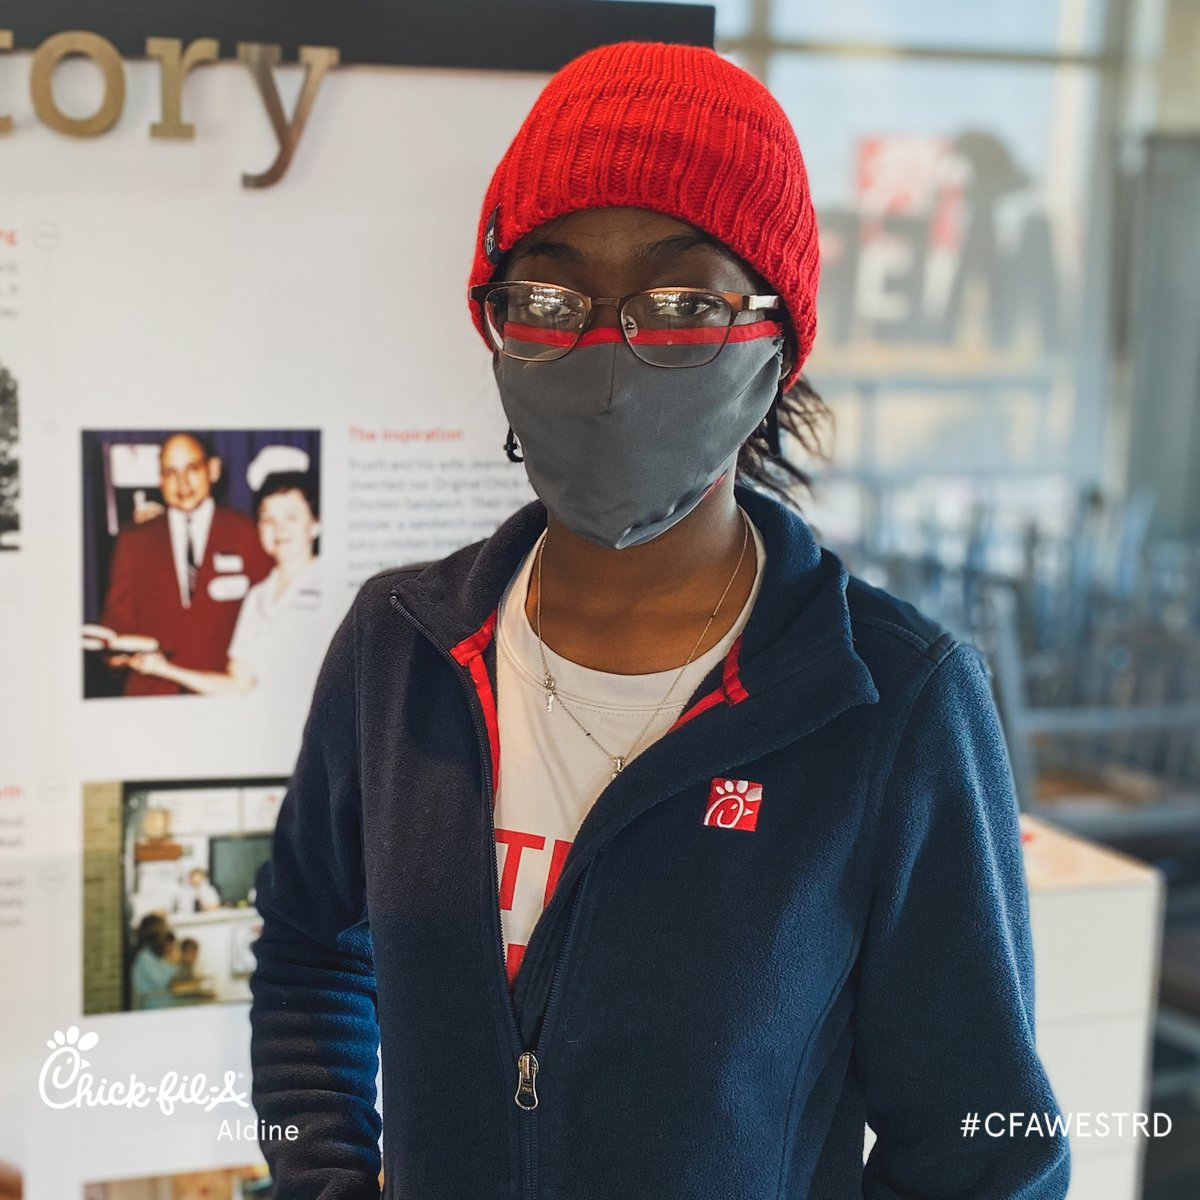 It's #TeamMemberTuesday! Eboney is great at being a big team player and we appreciate all her hard work! ❤️  Her favorite thing to eat are the Chick-fil-A nuggets, favorite position is beverages and her hobby is going to the park 🌳 #CFAAldine #MyPleasure #AppreciationPost https://t.co/xwm3XGWHq8